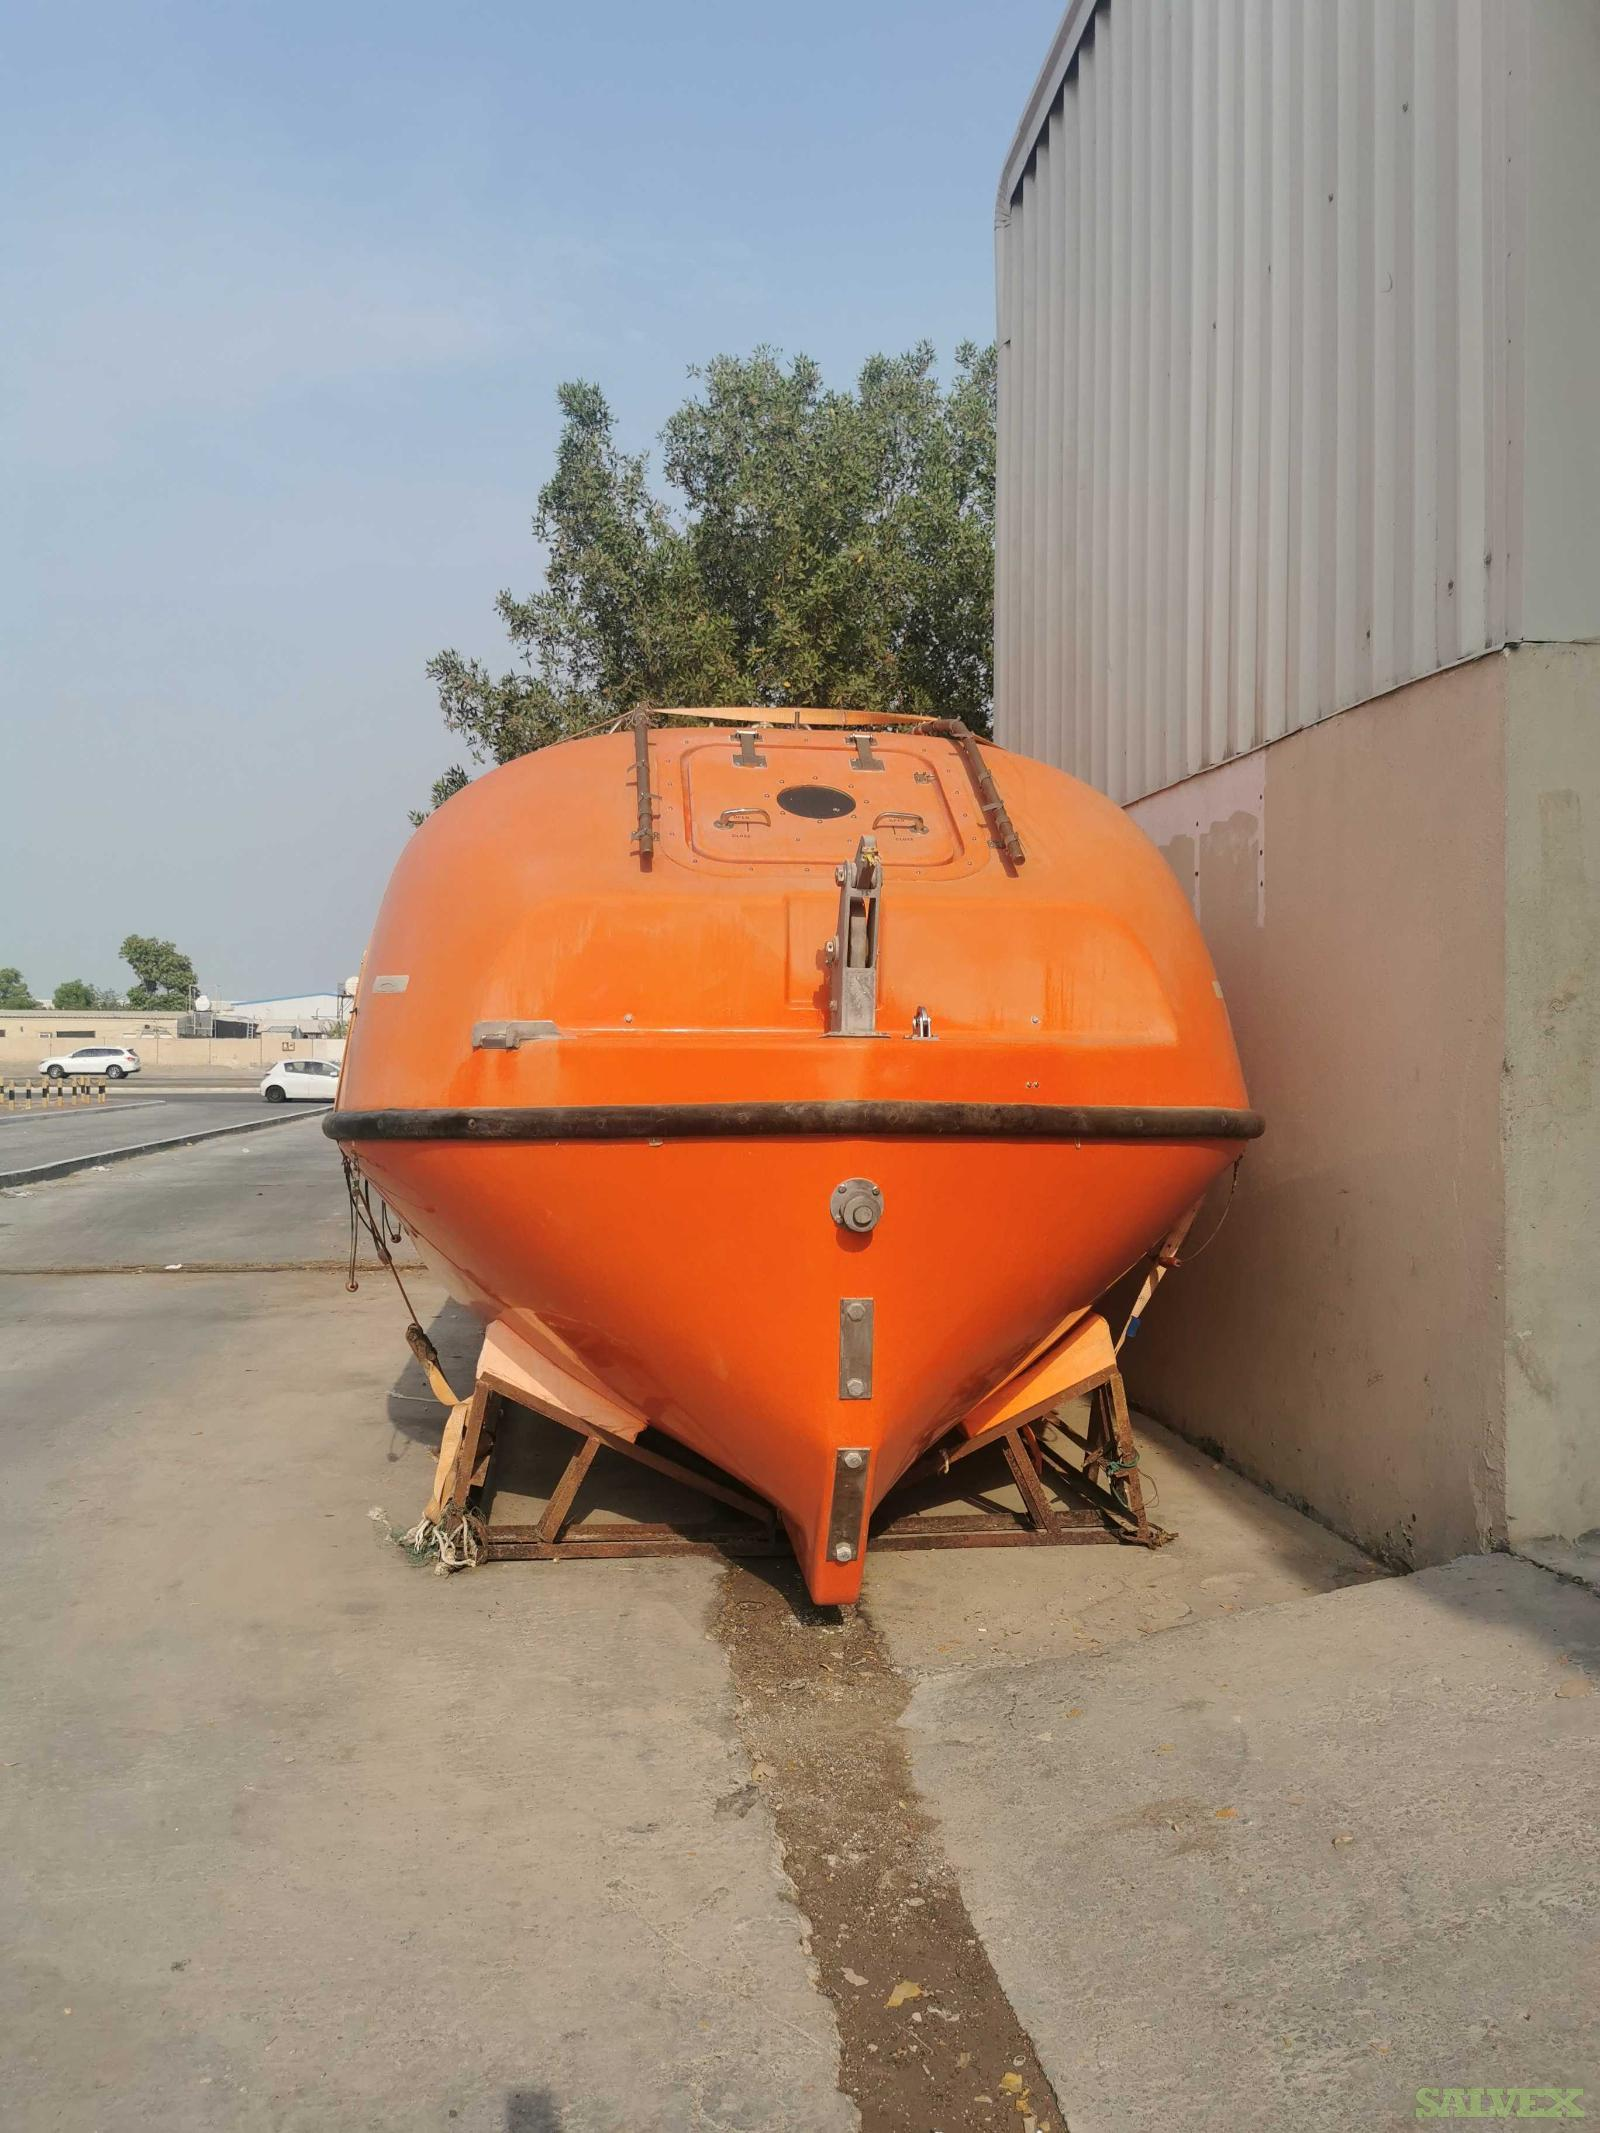 NOREQ LBT 750 T 50 Passenger Lifeboat 2009- Unused(1 Lifeboat)